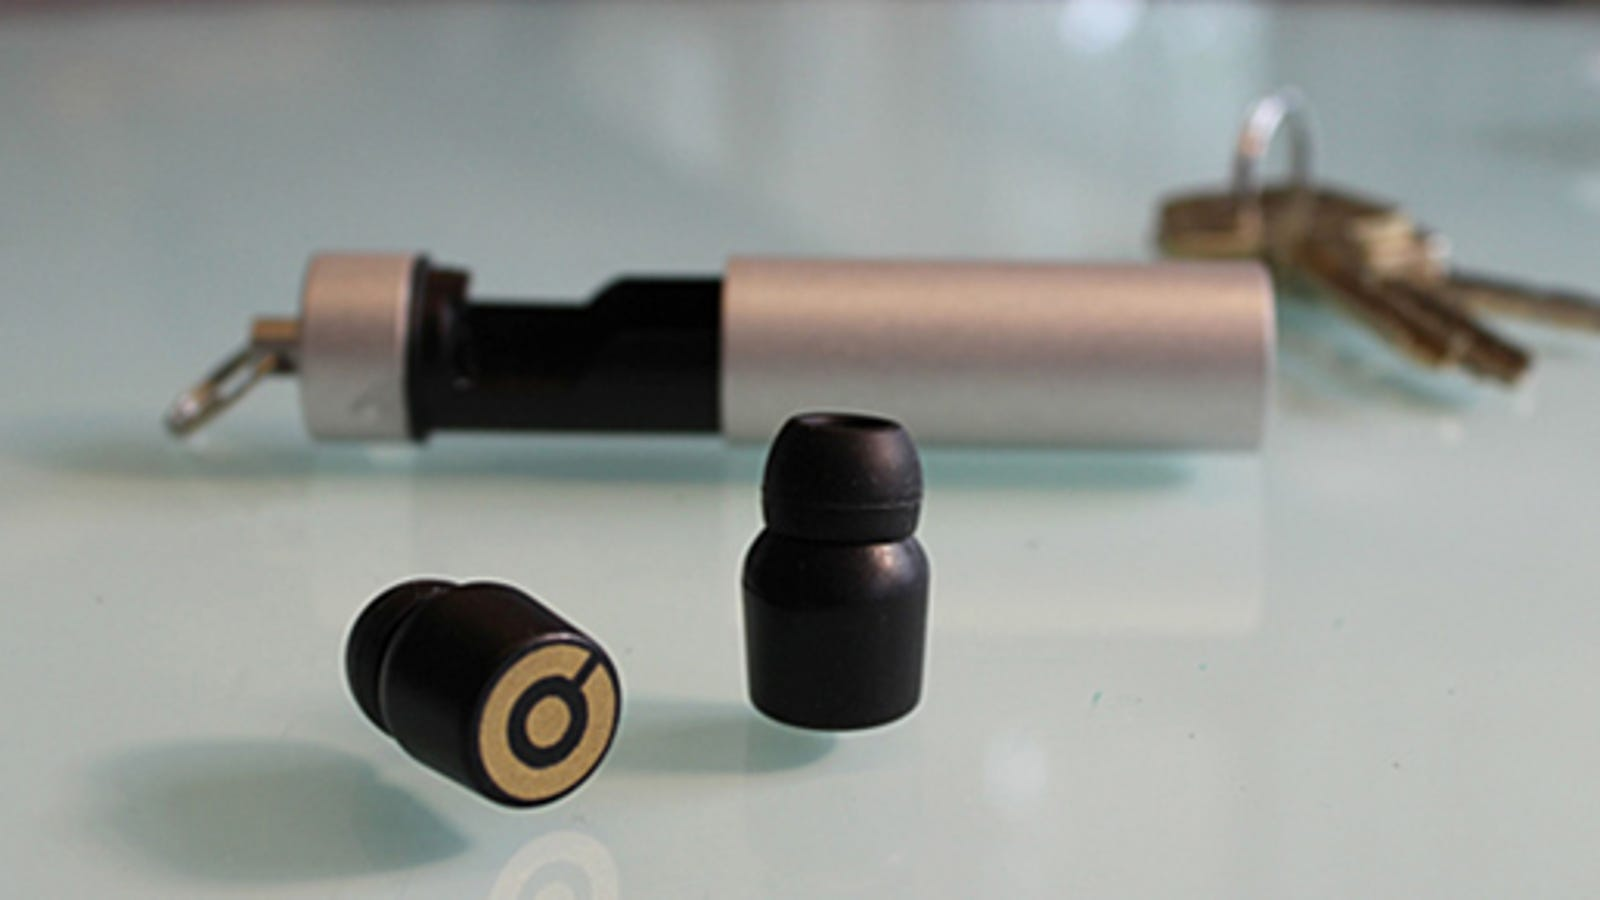 jbl reflect mini bt earbuds